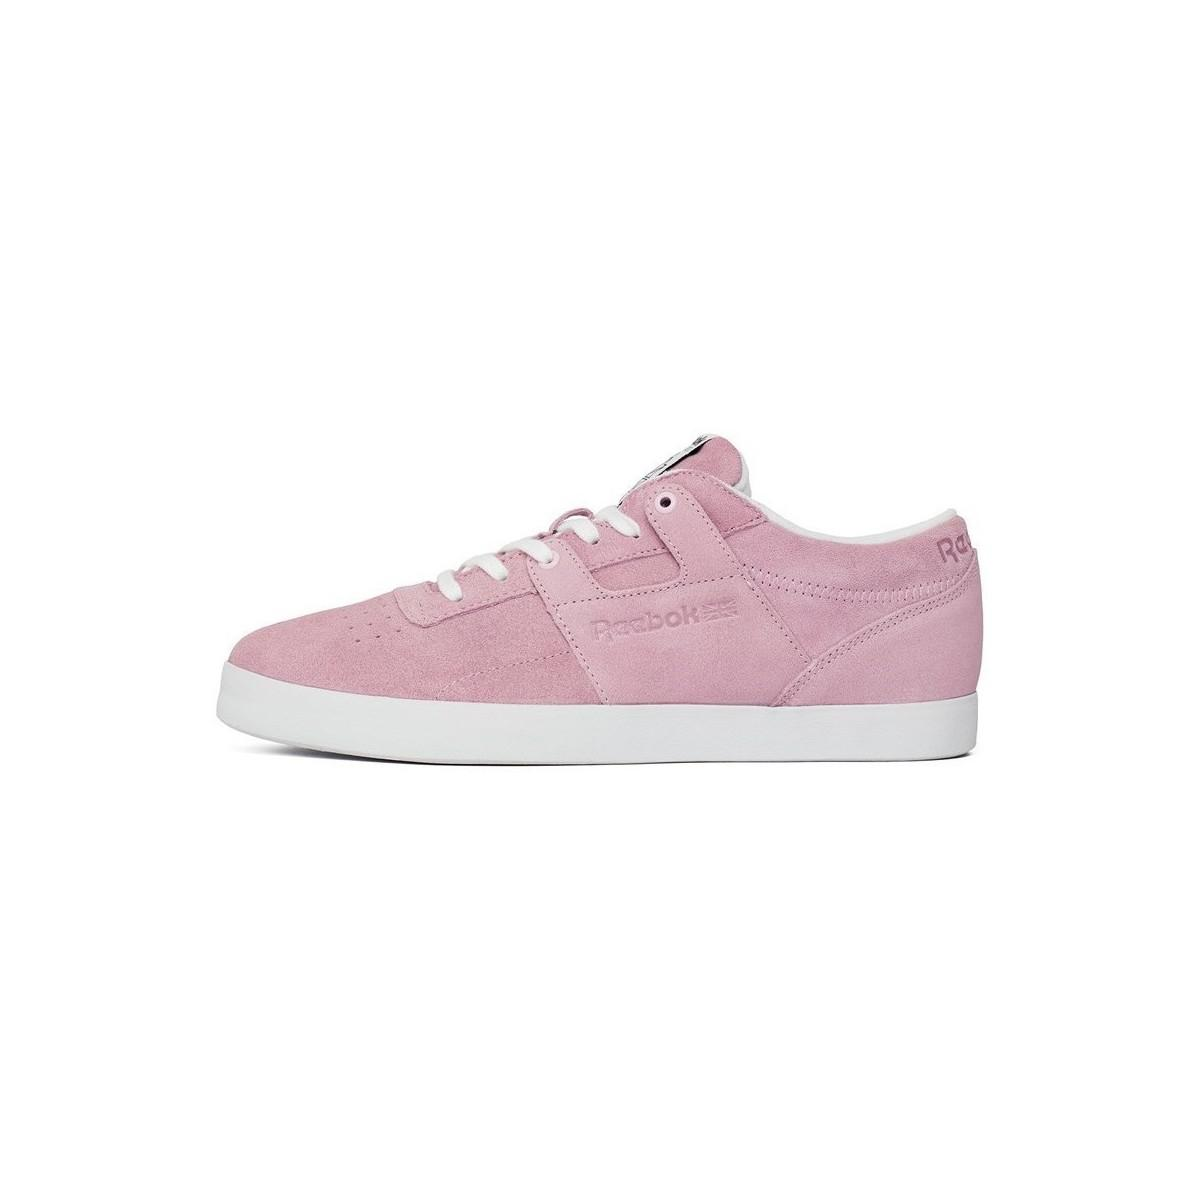 e1898da3174 Reebok Workout Clean Fvs Men s Shoes (trainers) In Pink in Pink for ...